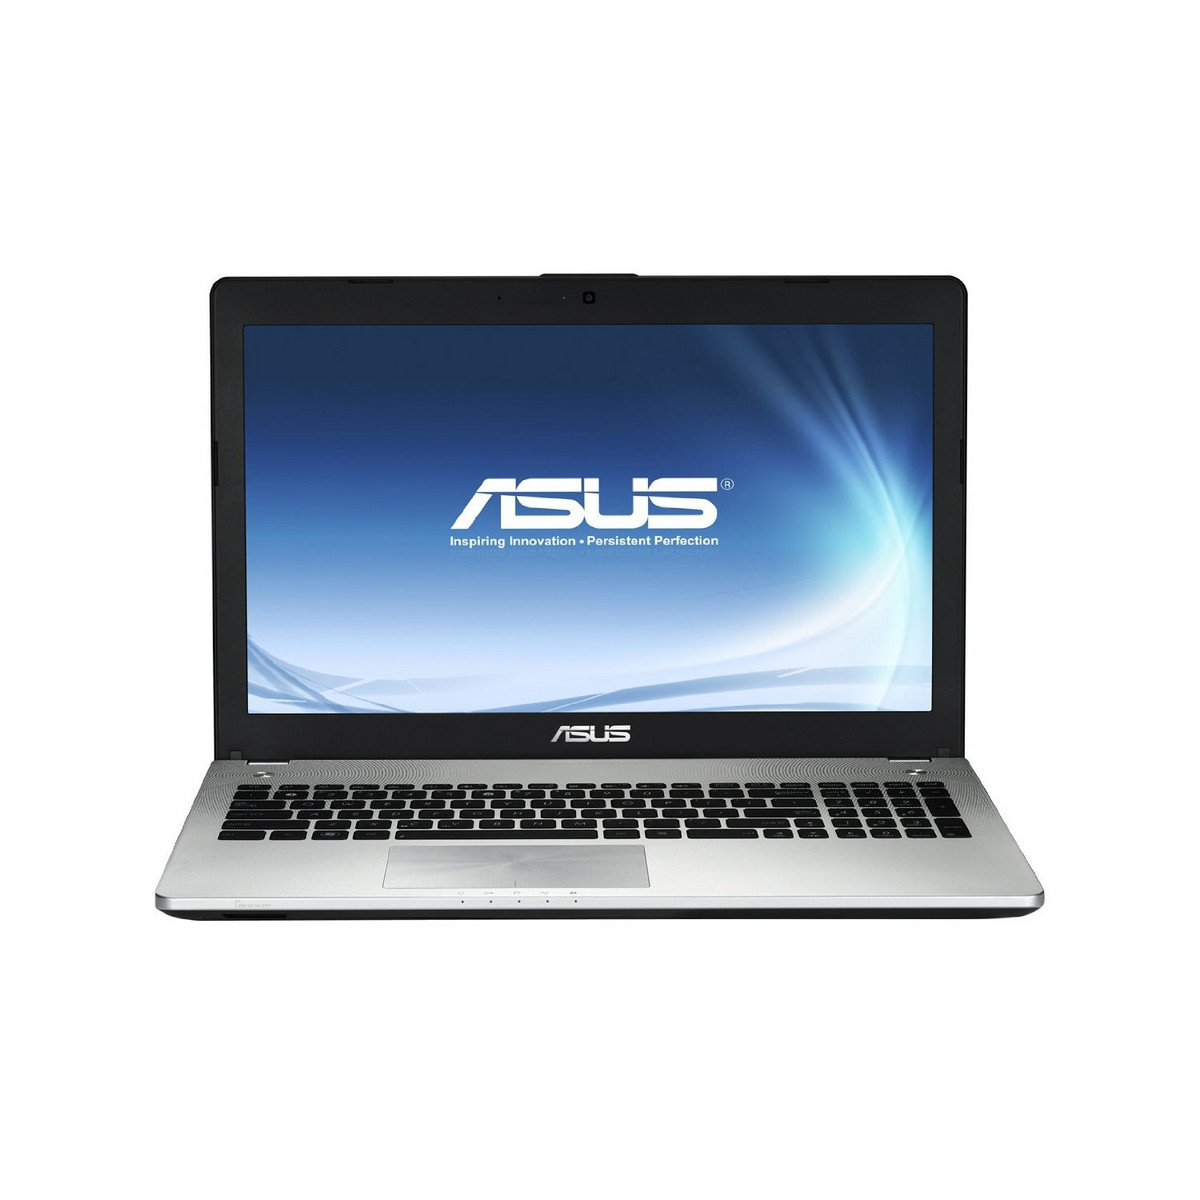 ASUS N56JRH DRIVERS FOR WINDOWS XP